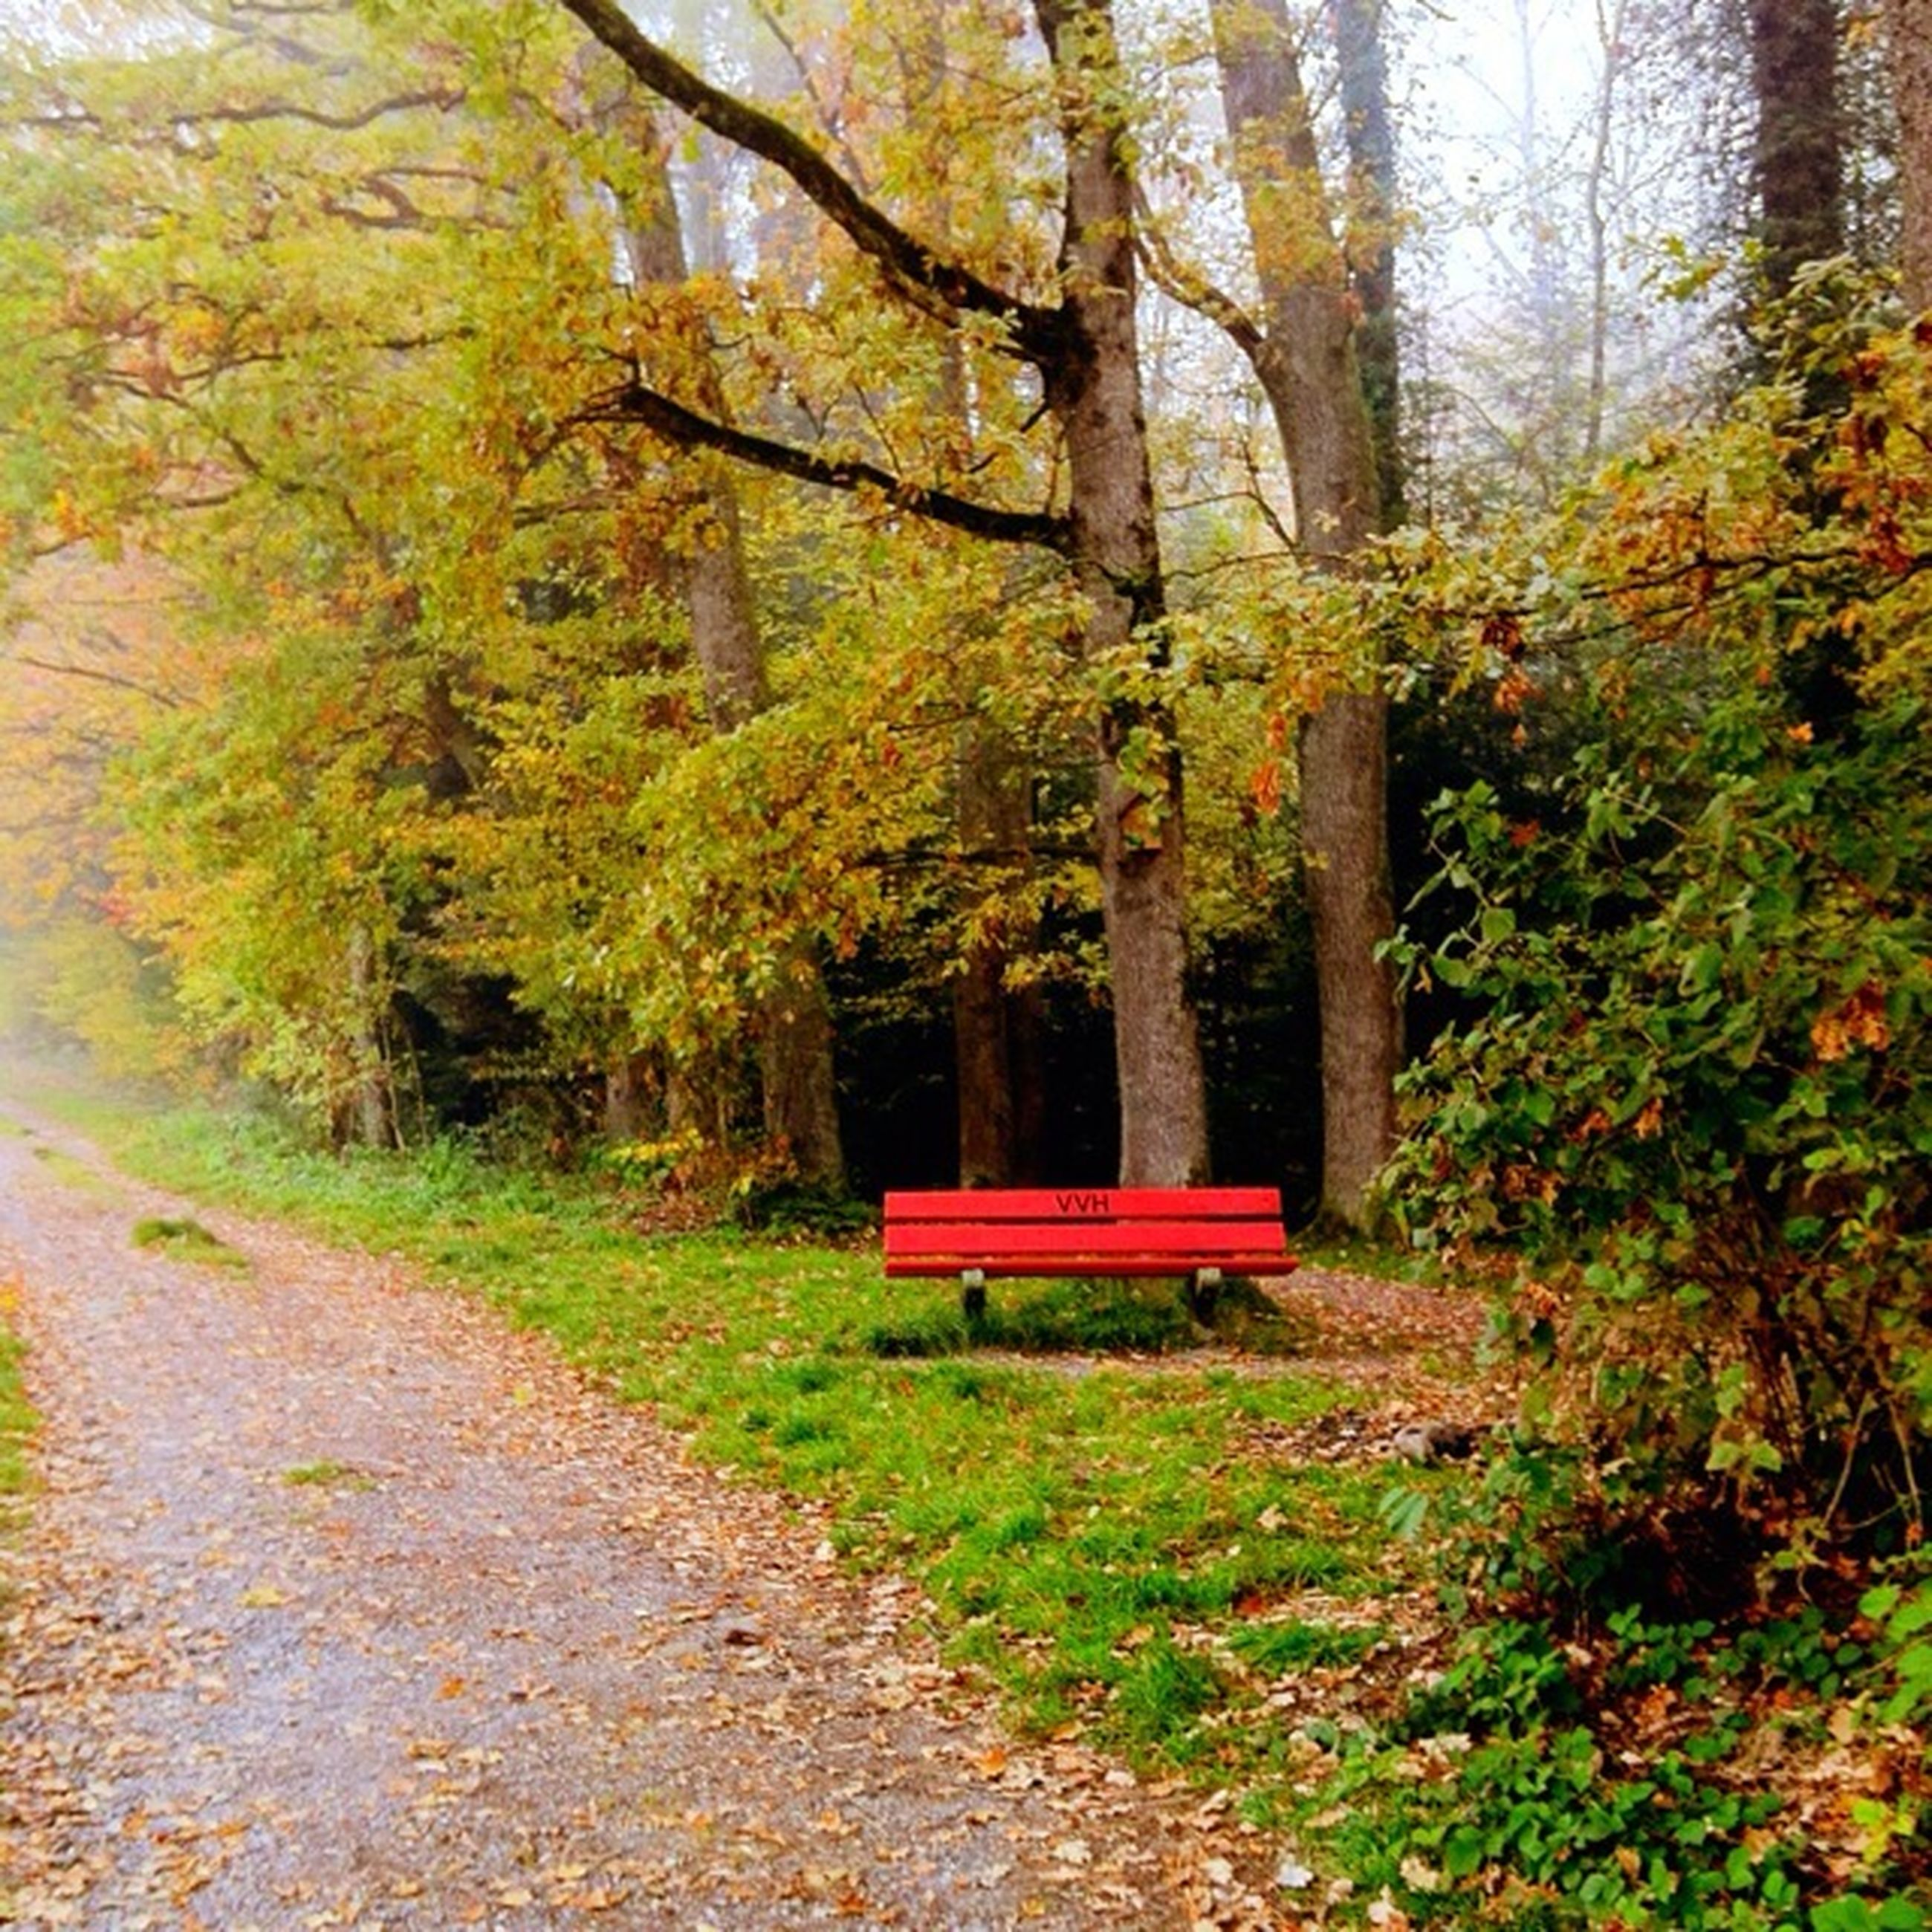 tree, empty, tranquility, the way forward, bench, absence, growth, green color, nature, forest, tranquil scene, day, beauty in nature, footpath, grass, no people, outdoors, plant, tree trunk, red